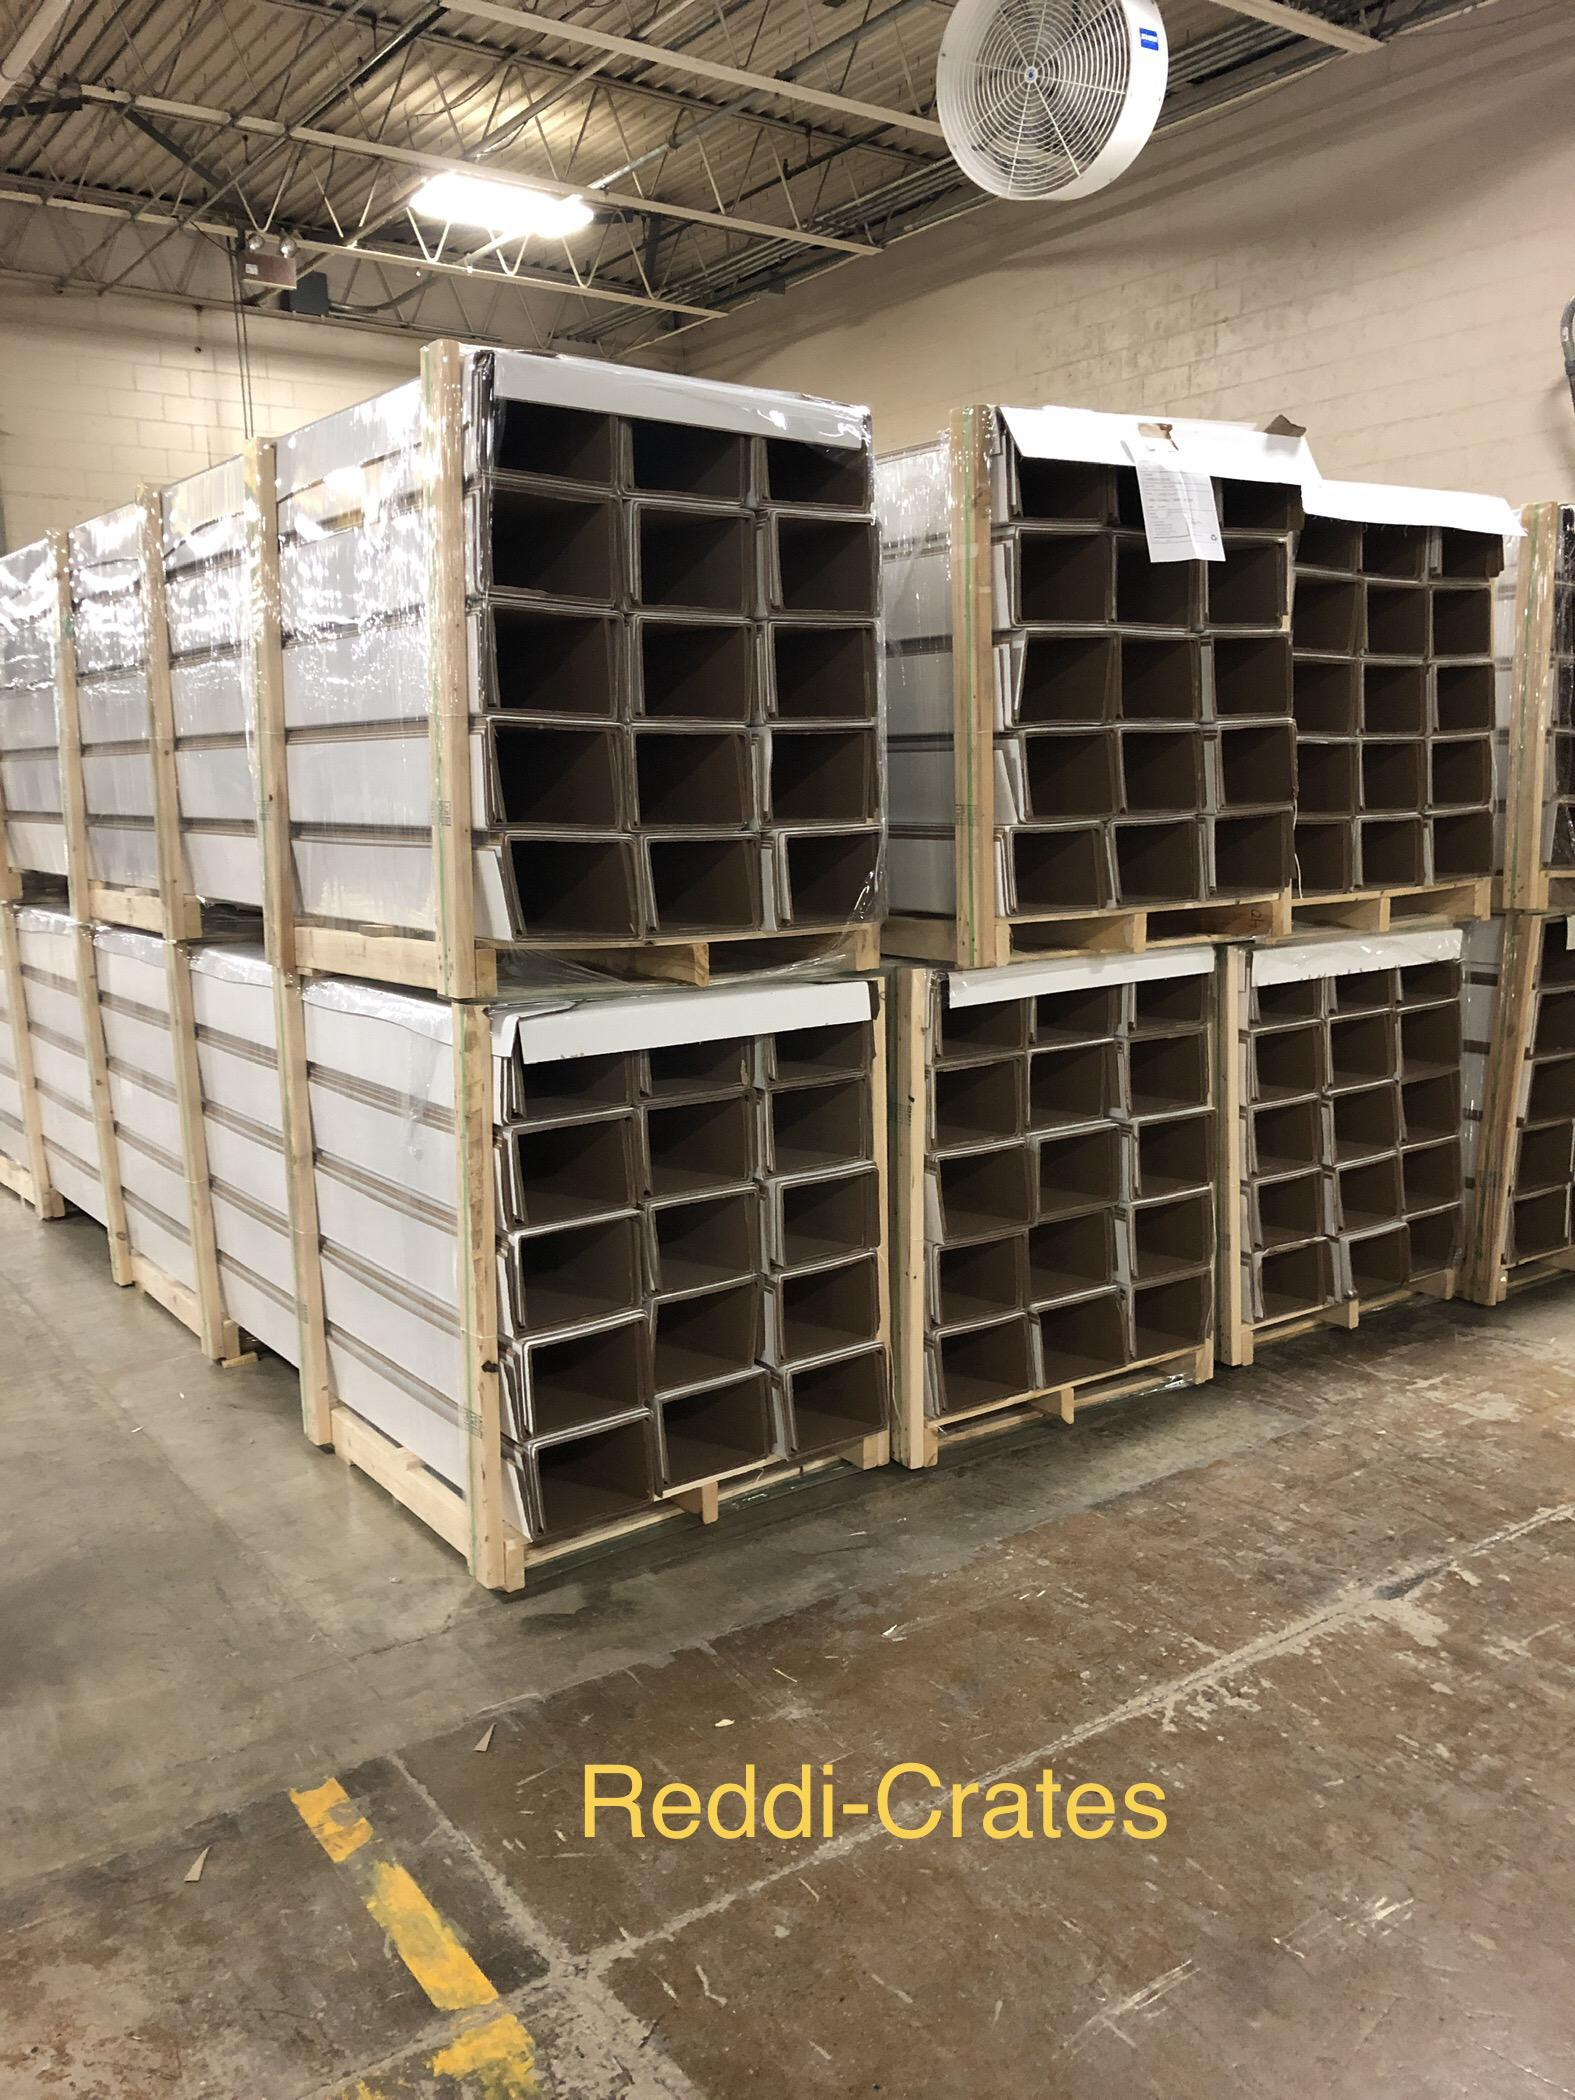 Reddi-Crate is the trusted name in the packaging industry because of their proven solutions.